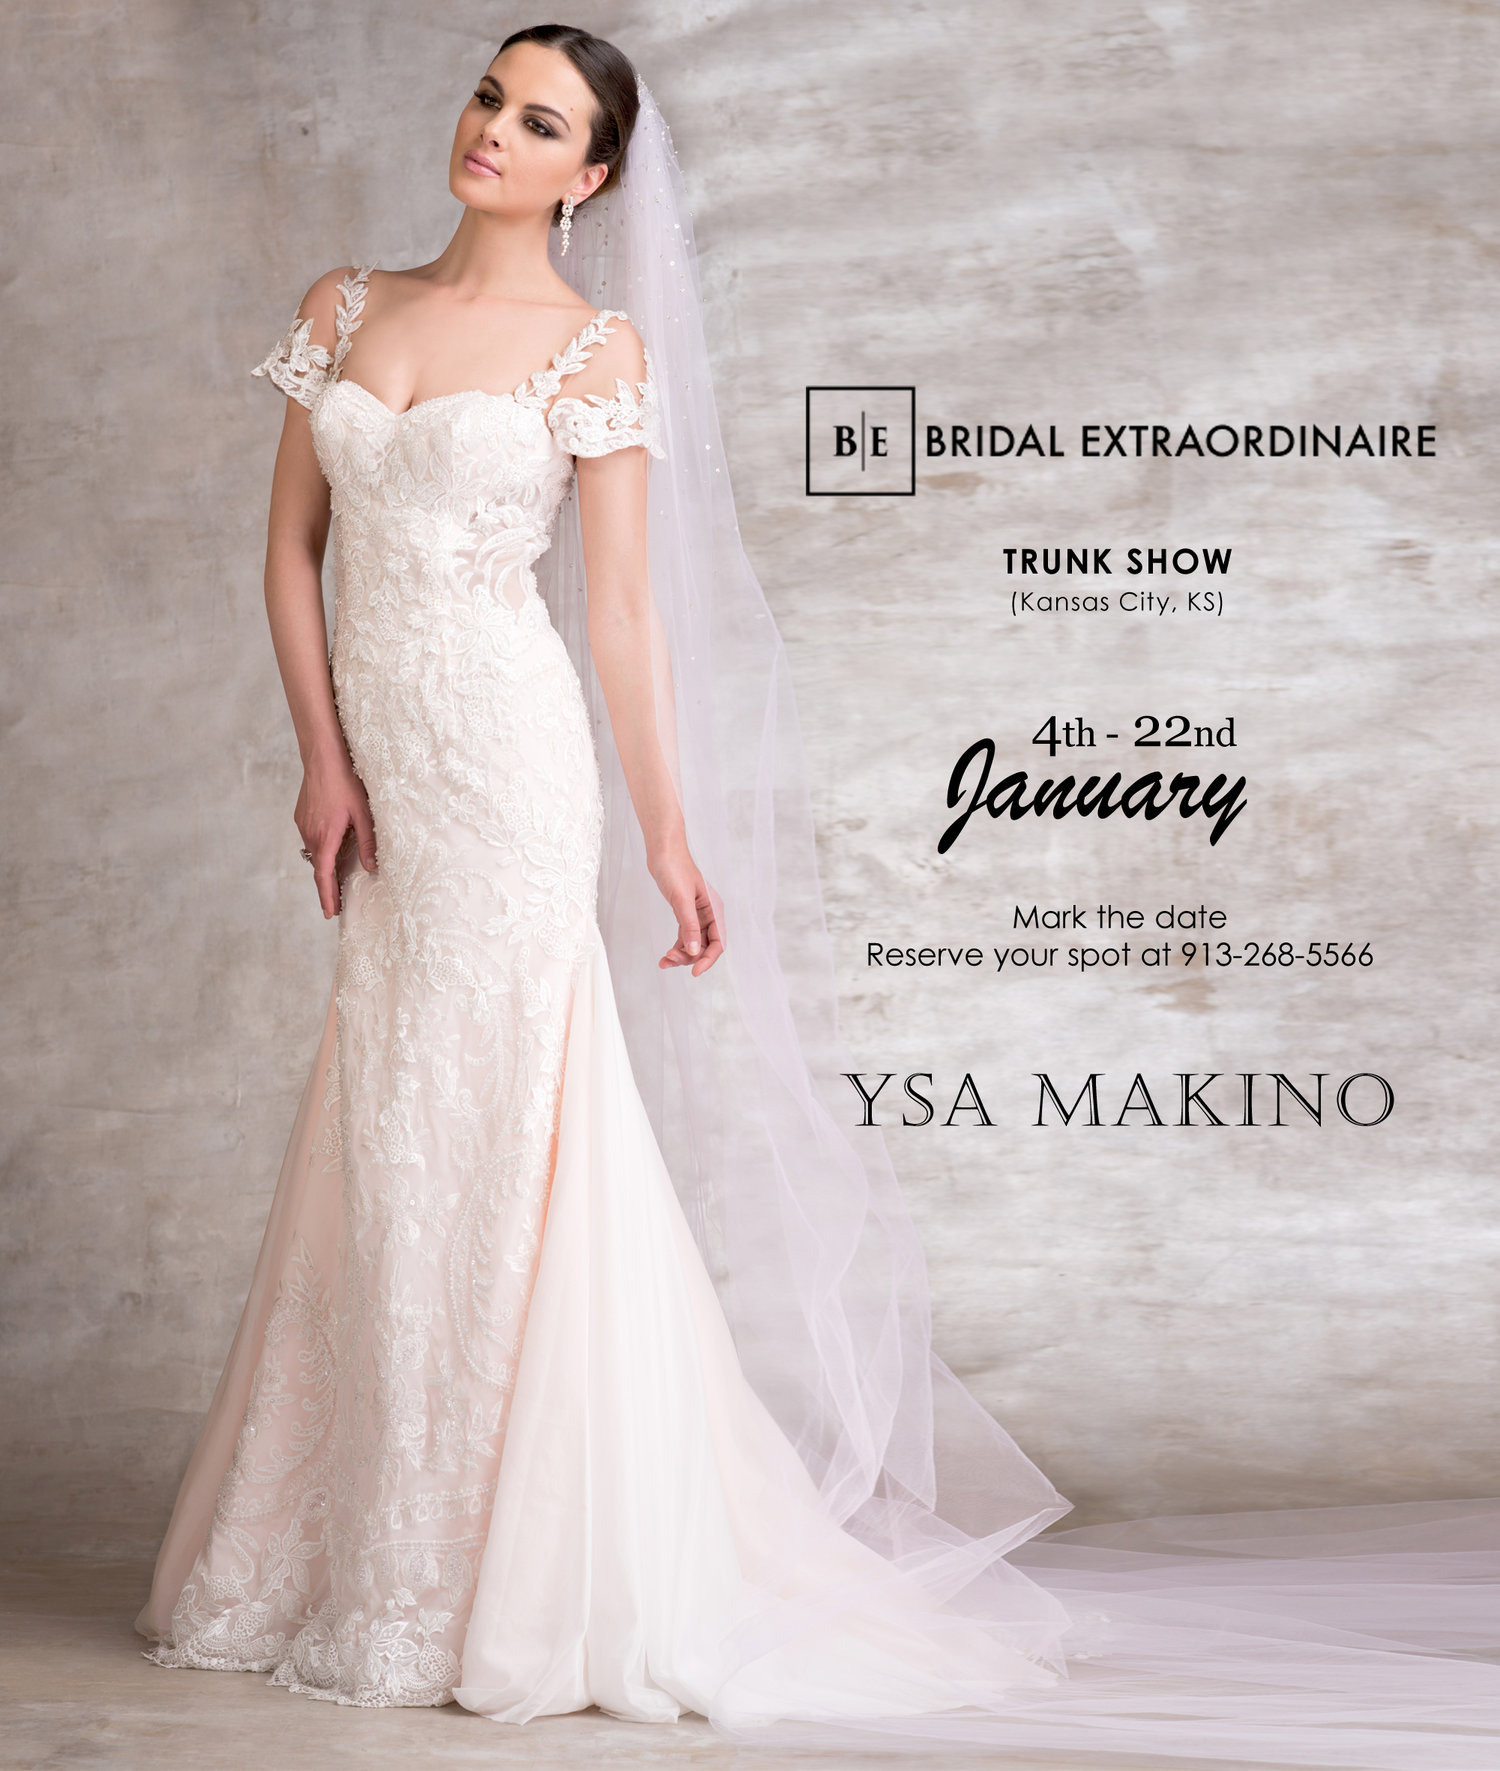 Upcoming Events Bridal Extraordinaire Kansas City Wedding Gowns